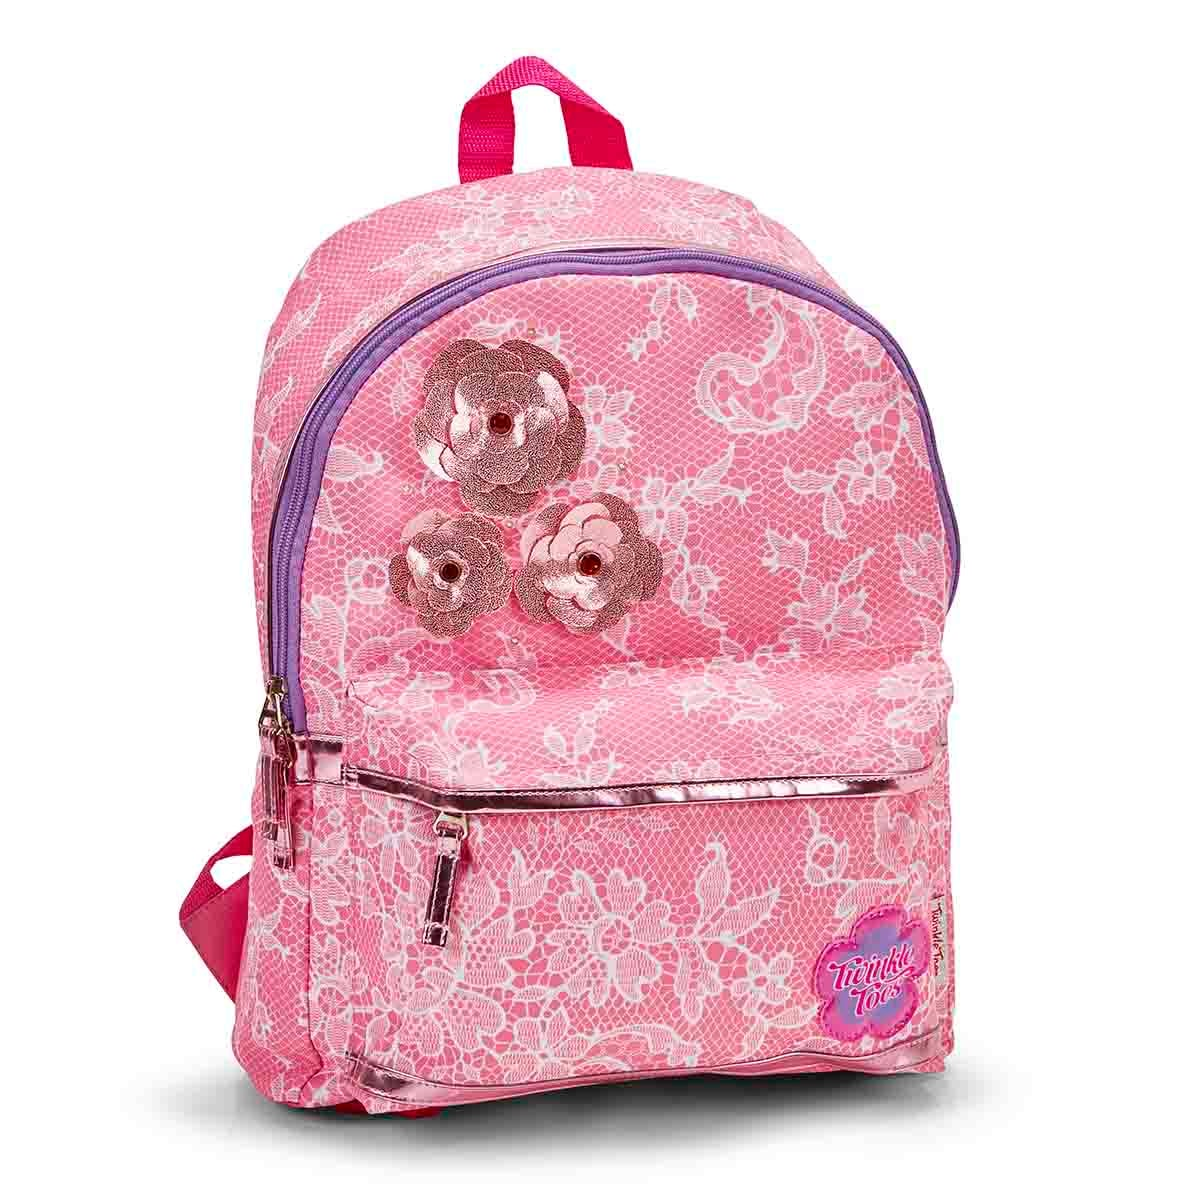 Girls CHANTILLY rose lace twinkle lightup backpack